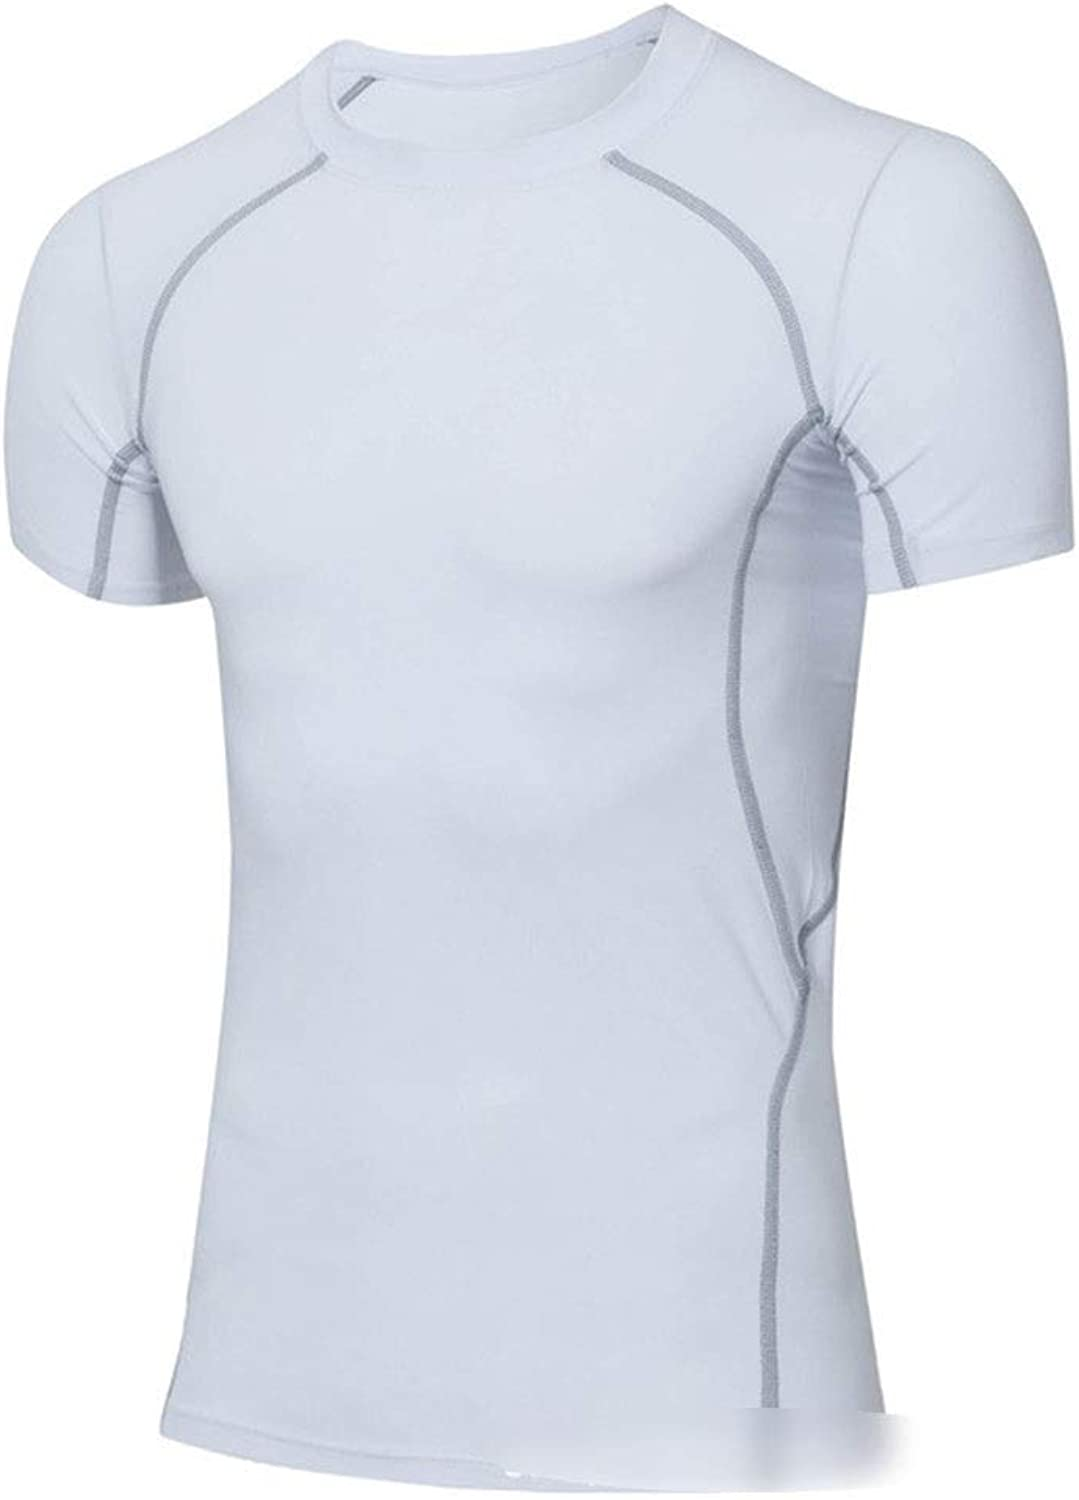 a136b0162f6ac KERVINJESSIE Short Sleeve Sports Shirts Mens Dry Dry Dry Fit T Shirts  Compression Shirts (color White, Size XL) 46a046